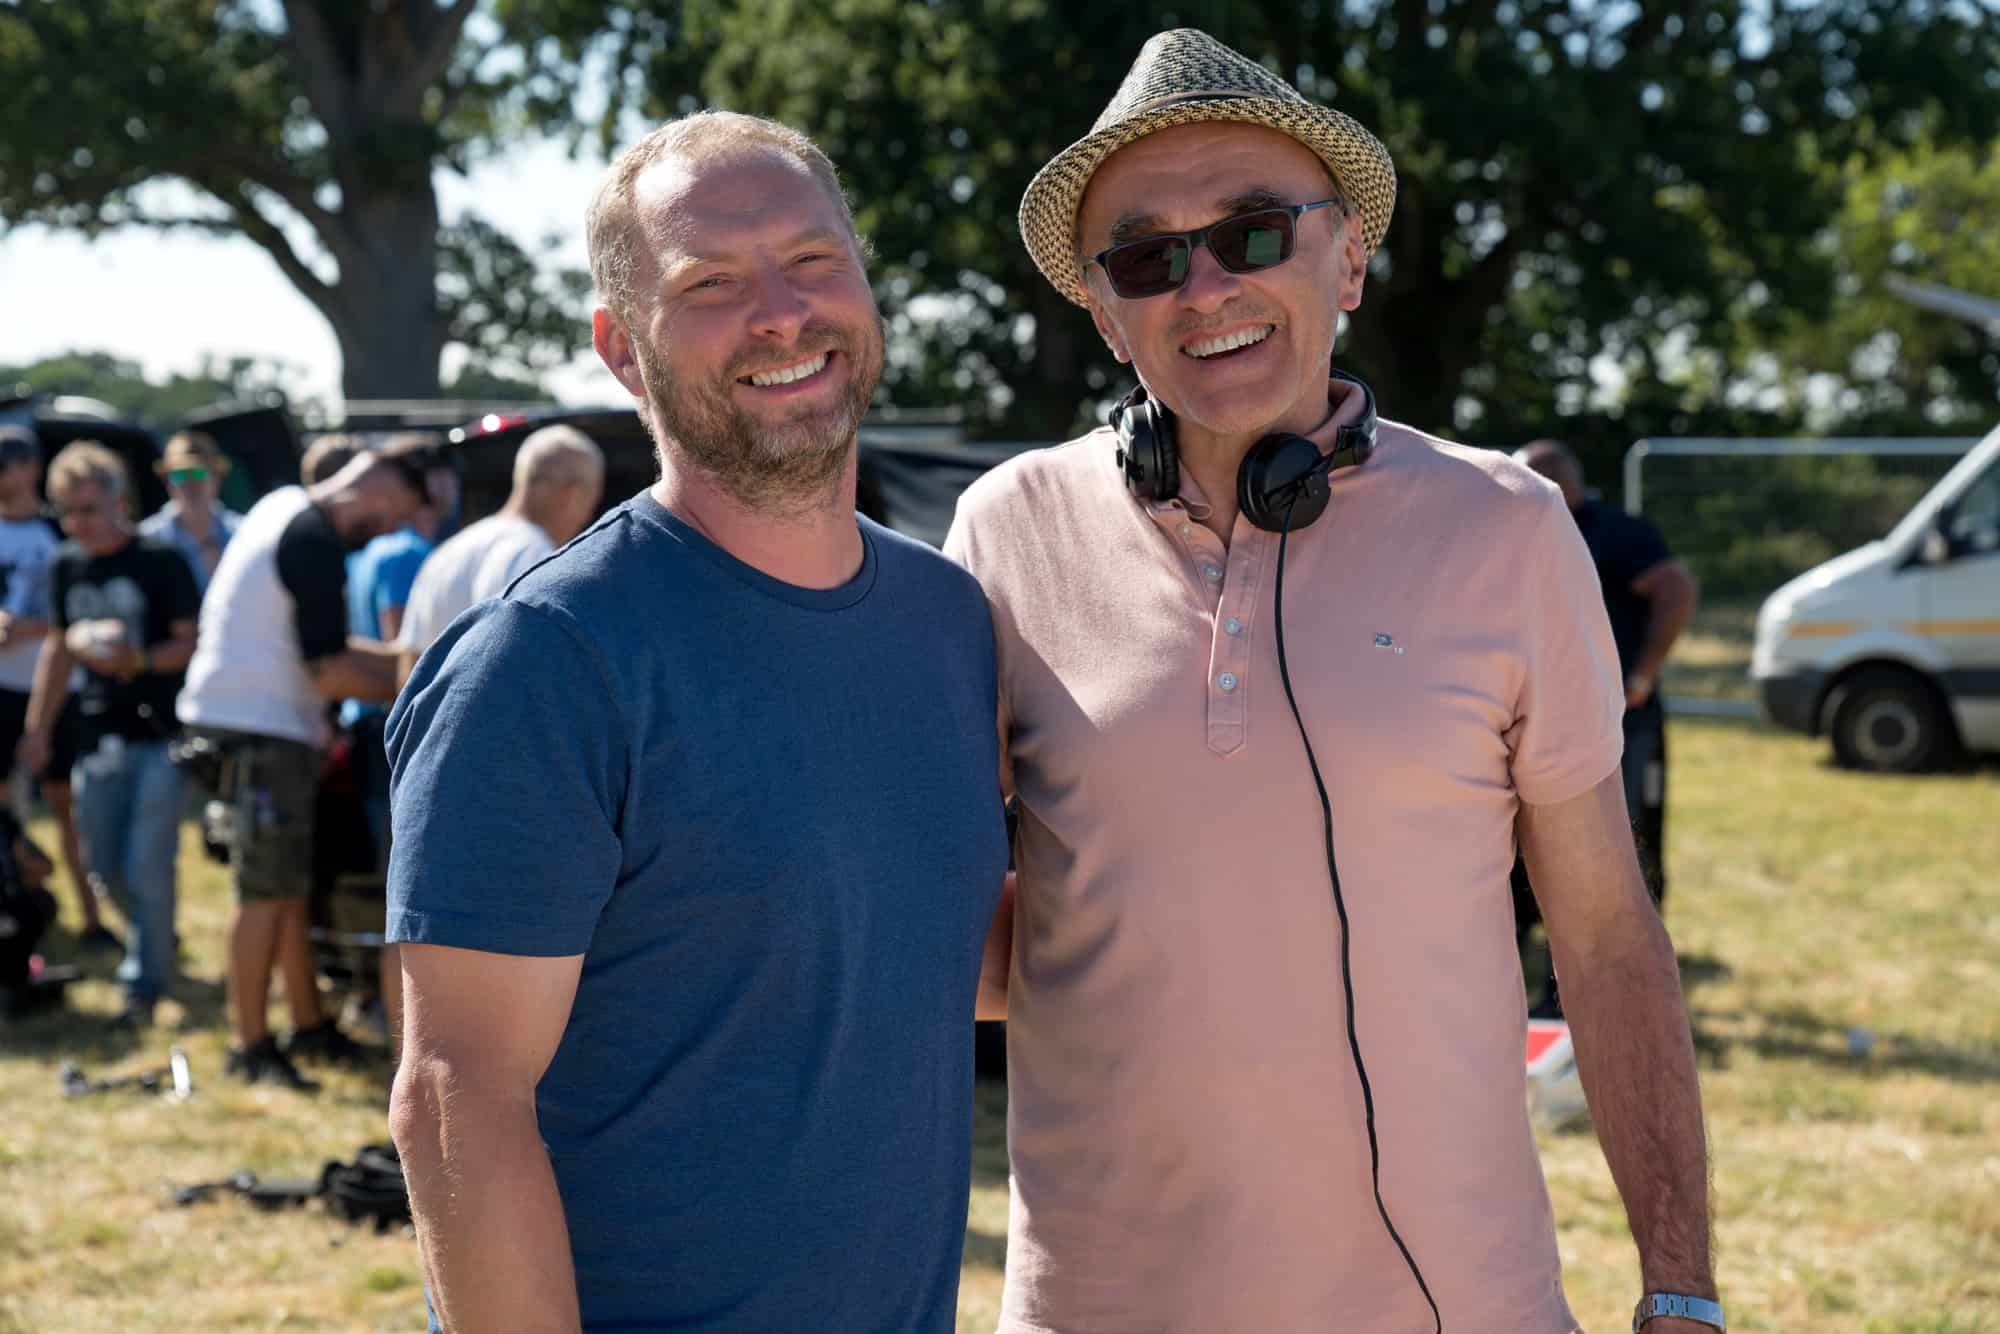 DP Christopher Ross BSC and Director Danny Boyle